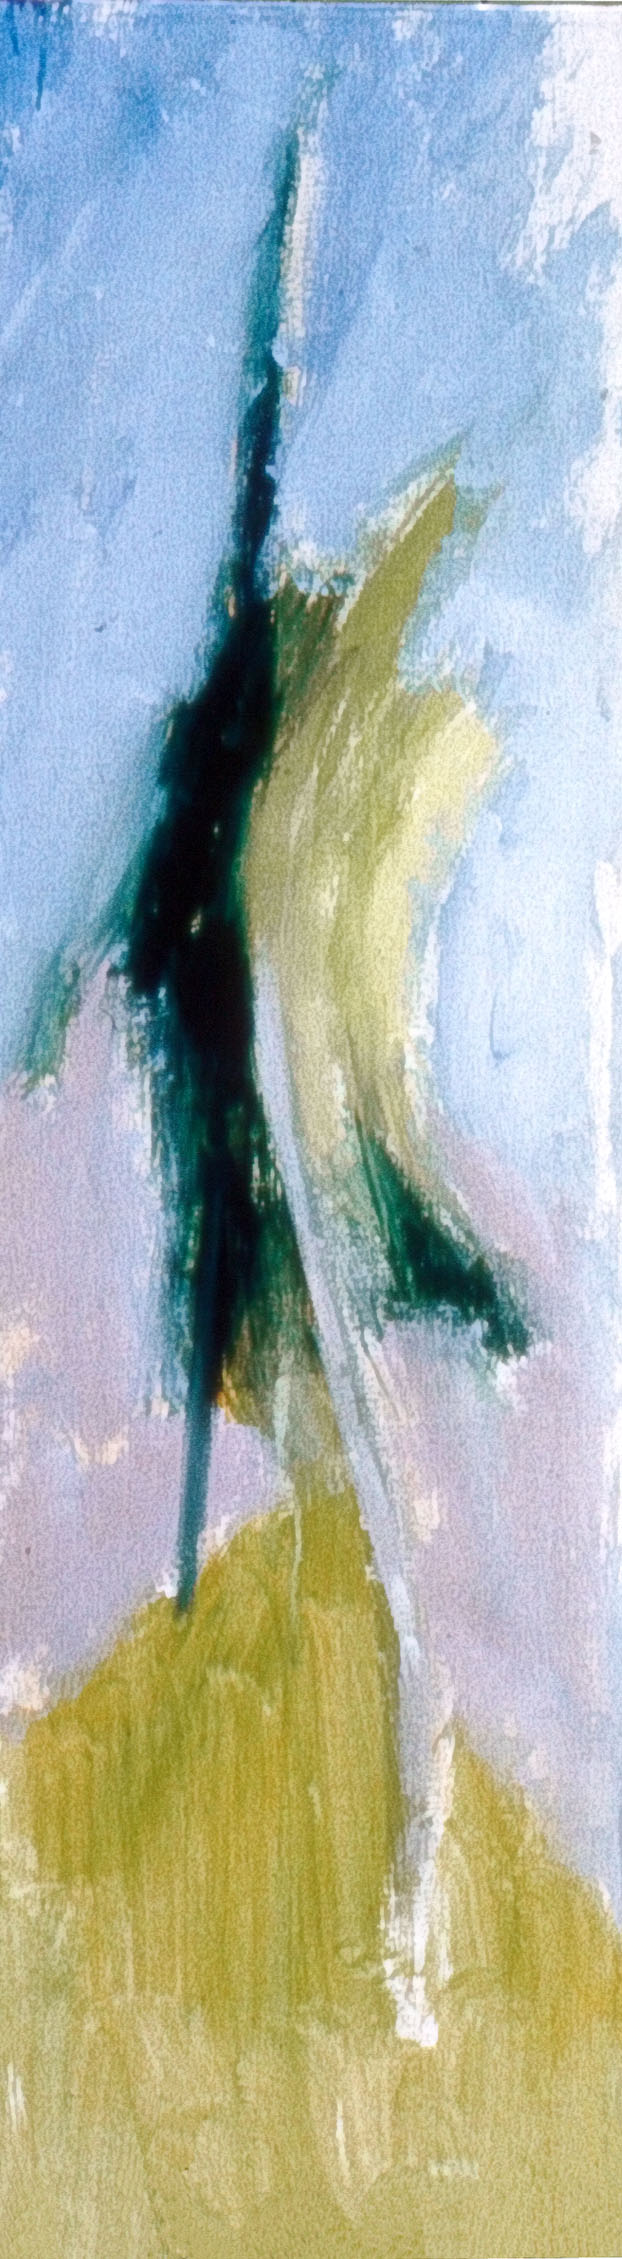 Irwin and I  1962, acrylic on canvas, 42x12 in